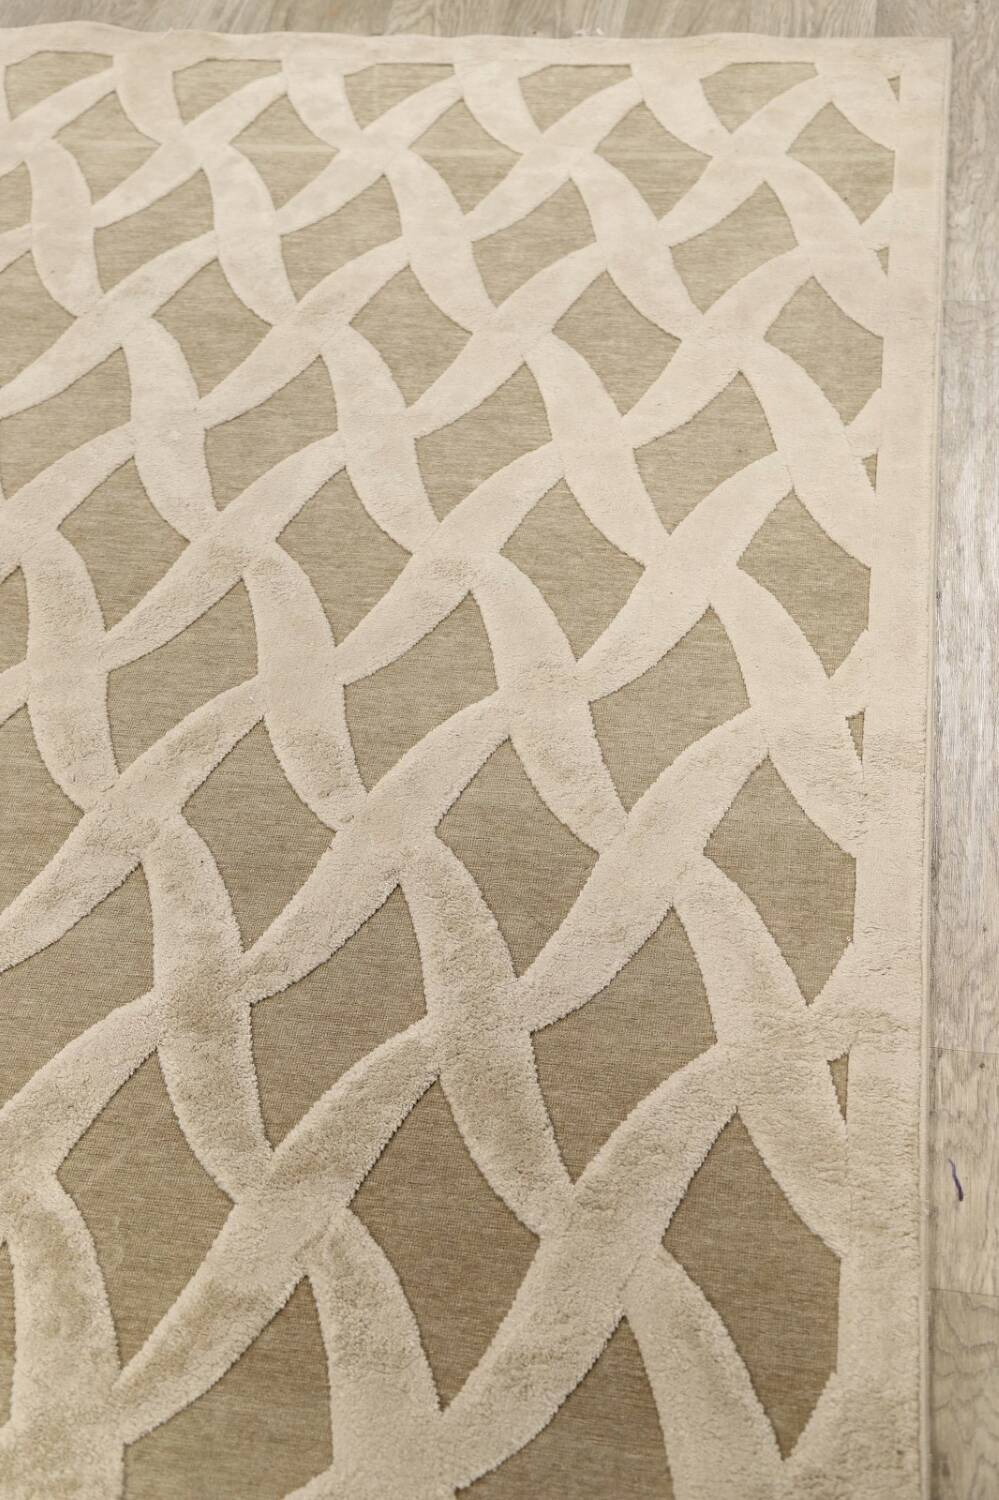 All-Over Waves Design Modern Oriental Area Rug 6x9 image 10